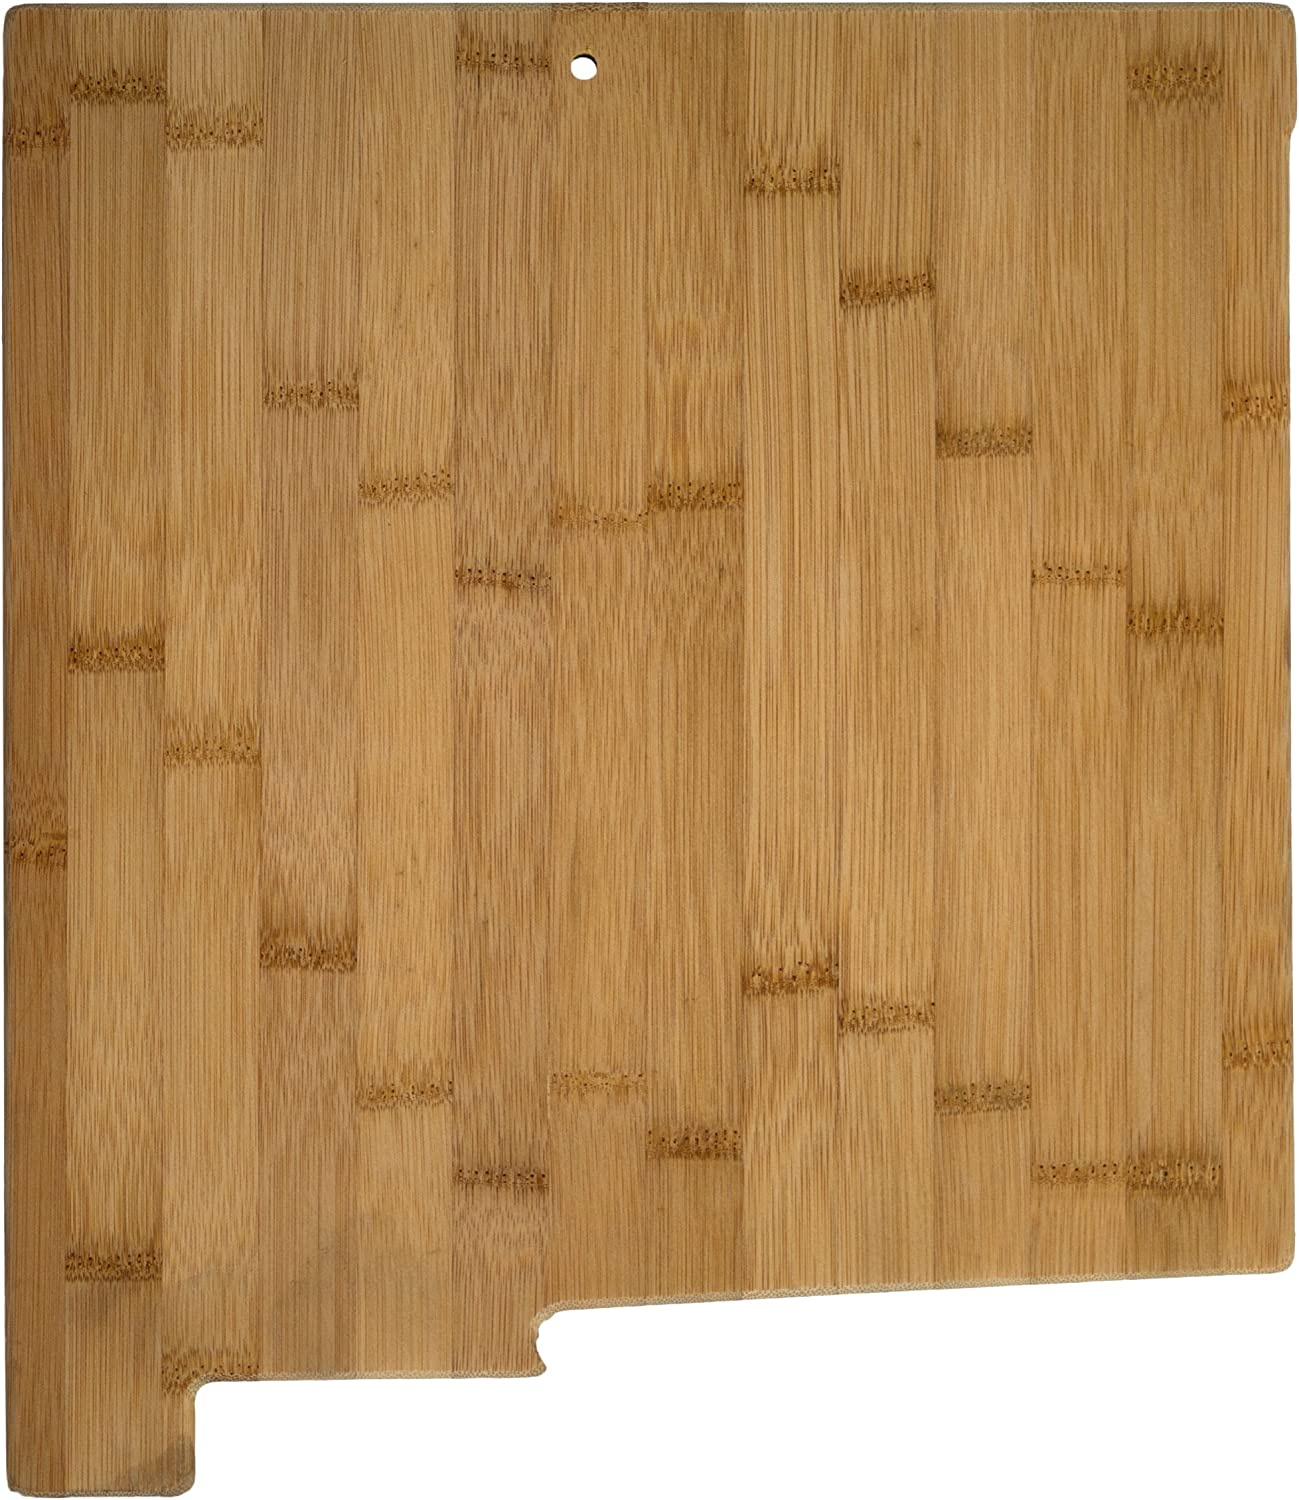 Totally Bamboo New Mexico State Shaped Serving & Cutting Board, Natural Bamboo